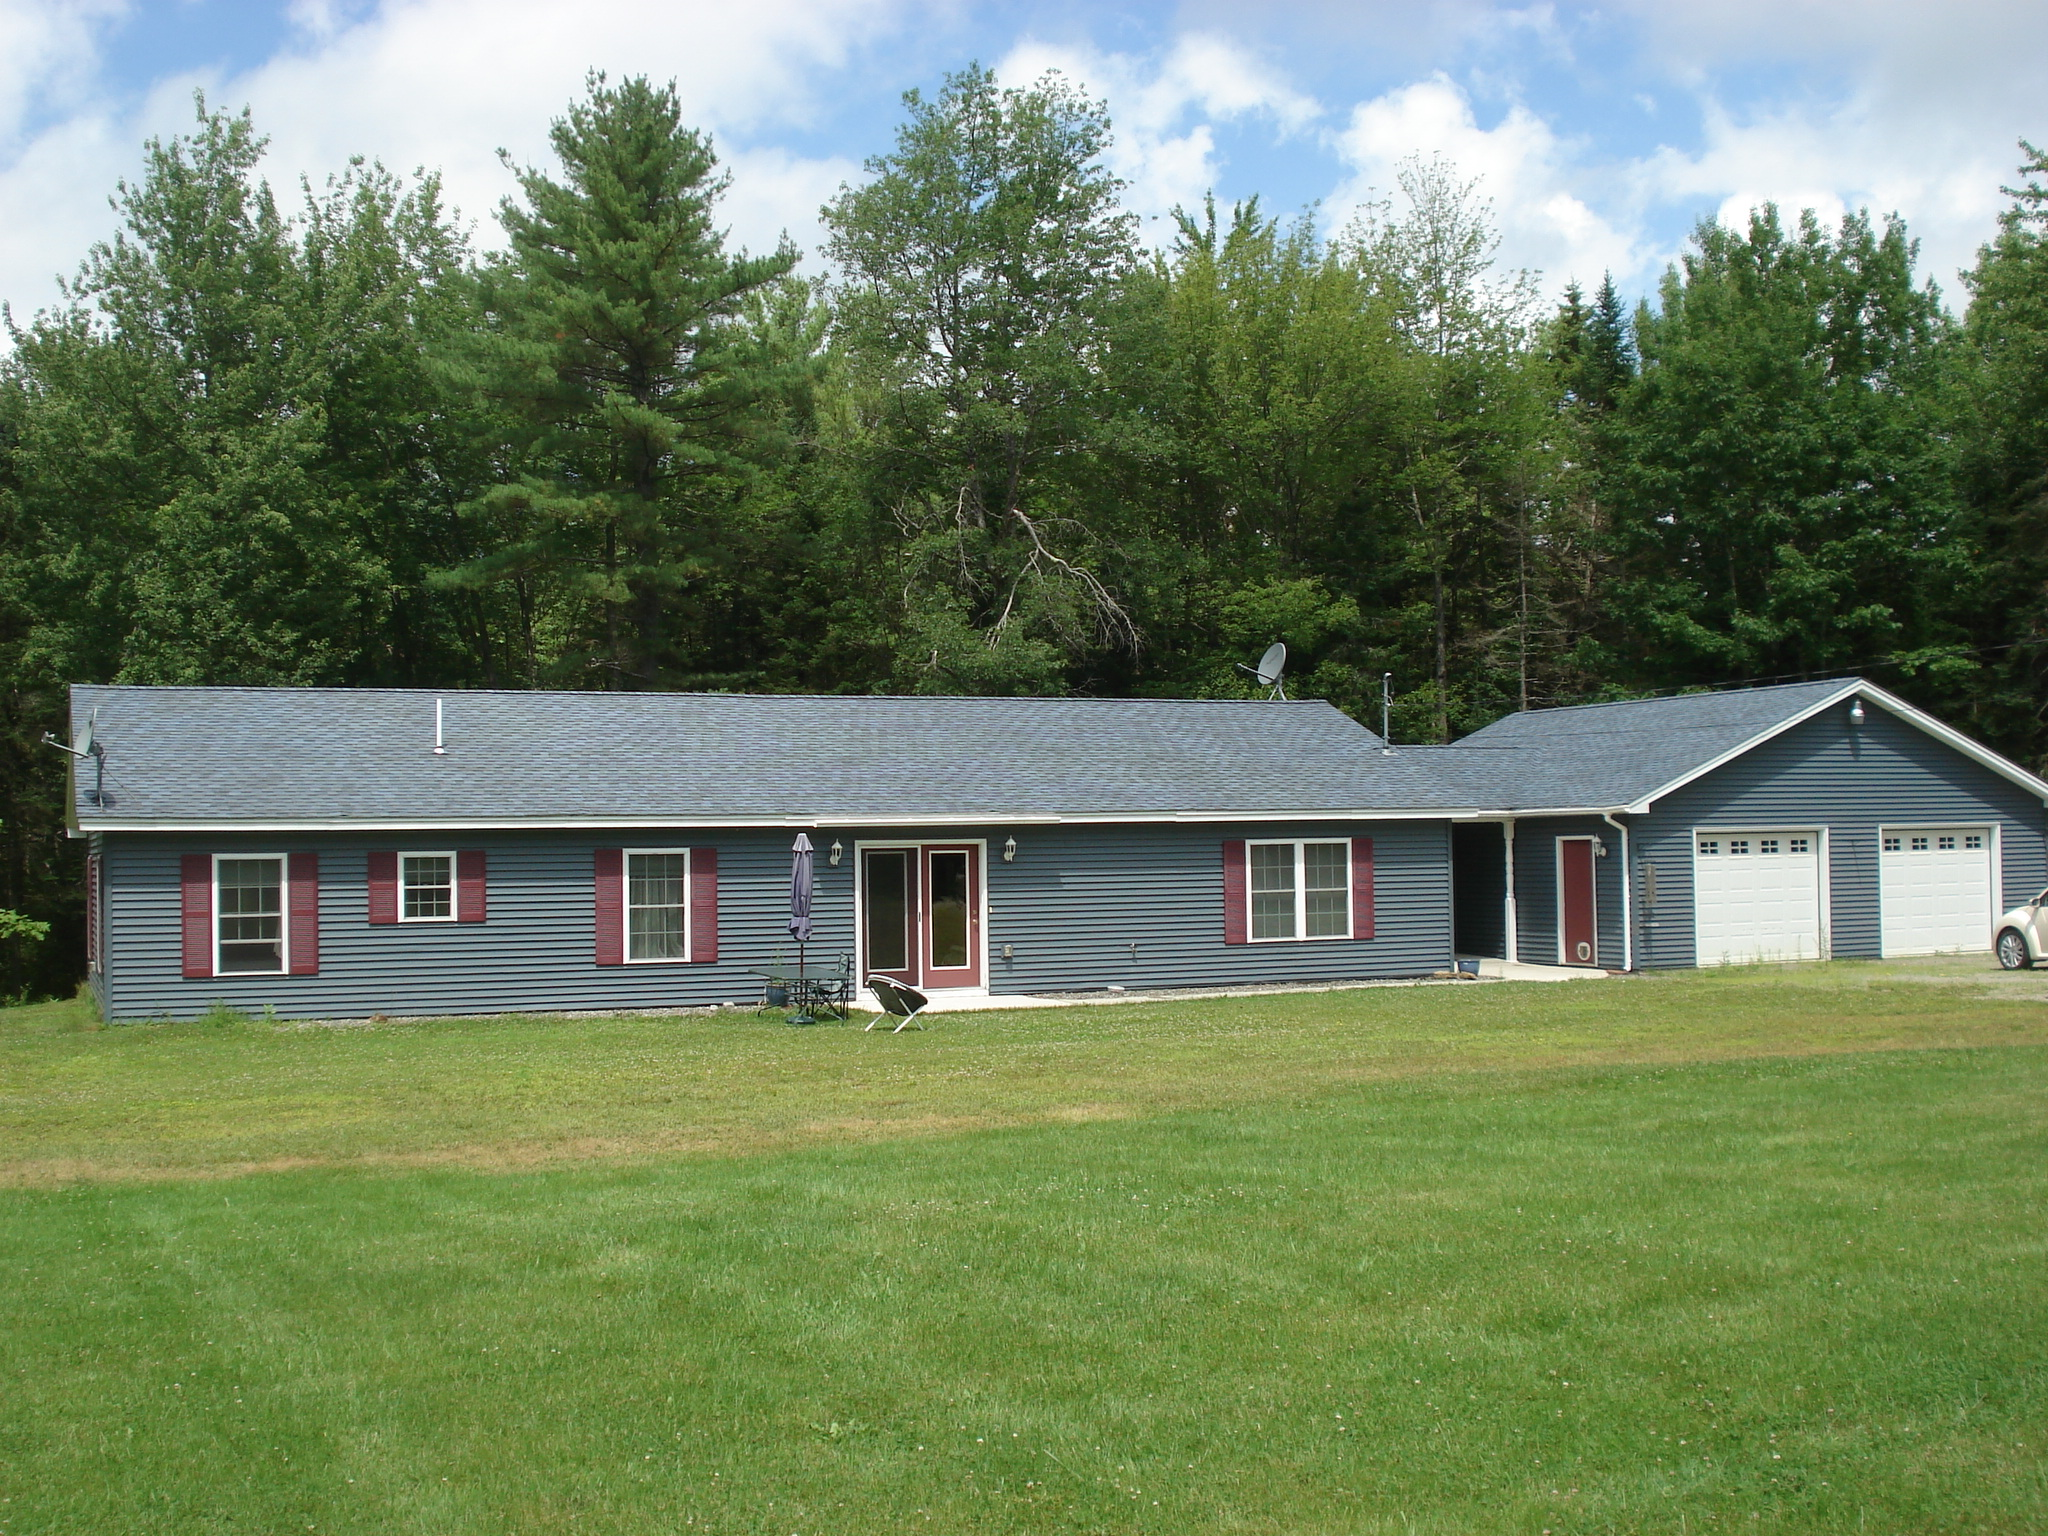 9 Souder Station Road, Winterport, ME 04496